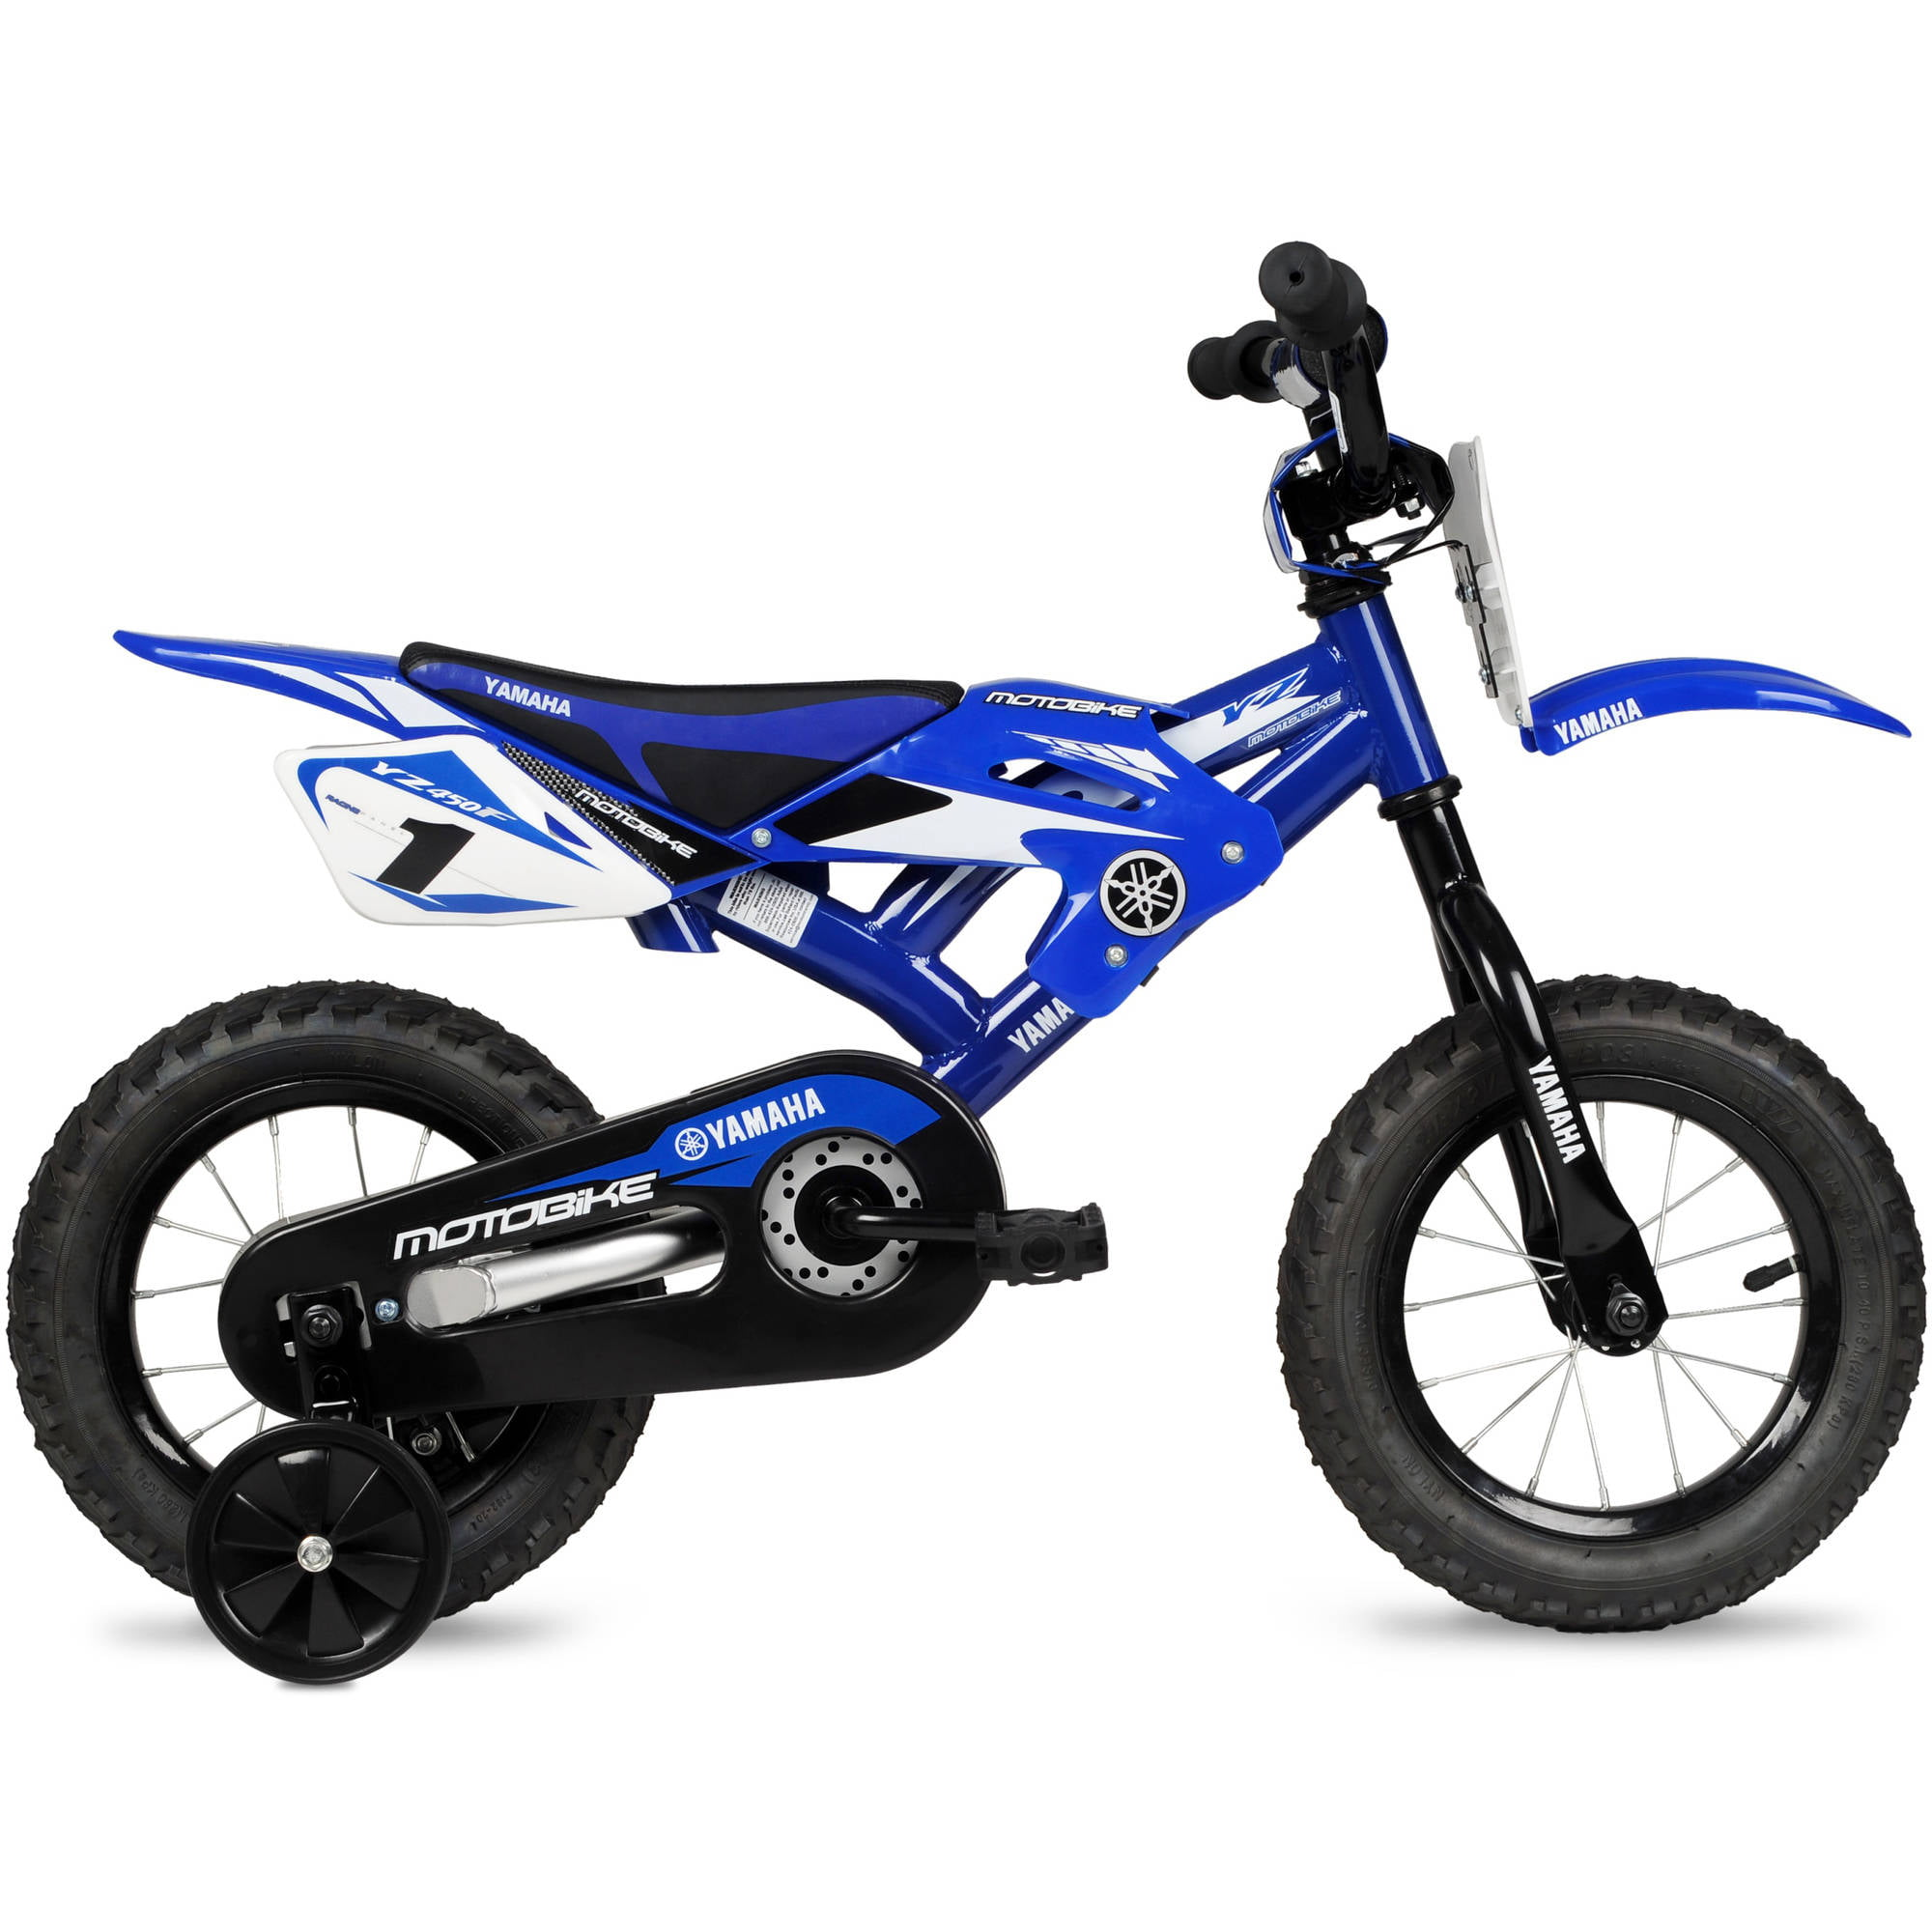 "12"" Yamaha Moto Child's BMX Bike by Generic"